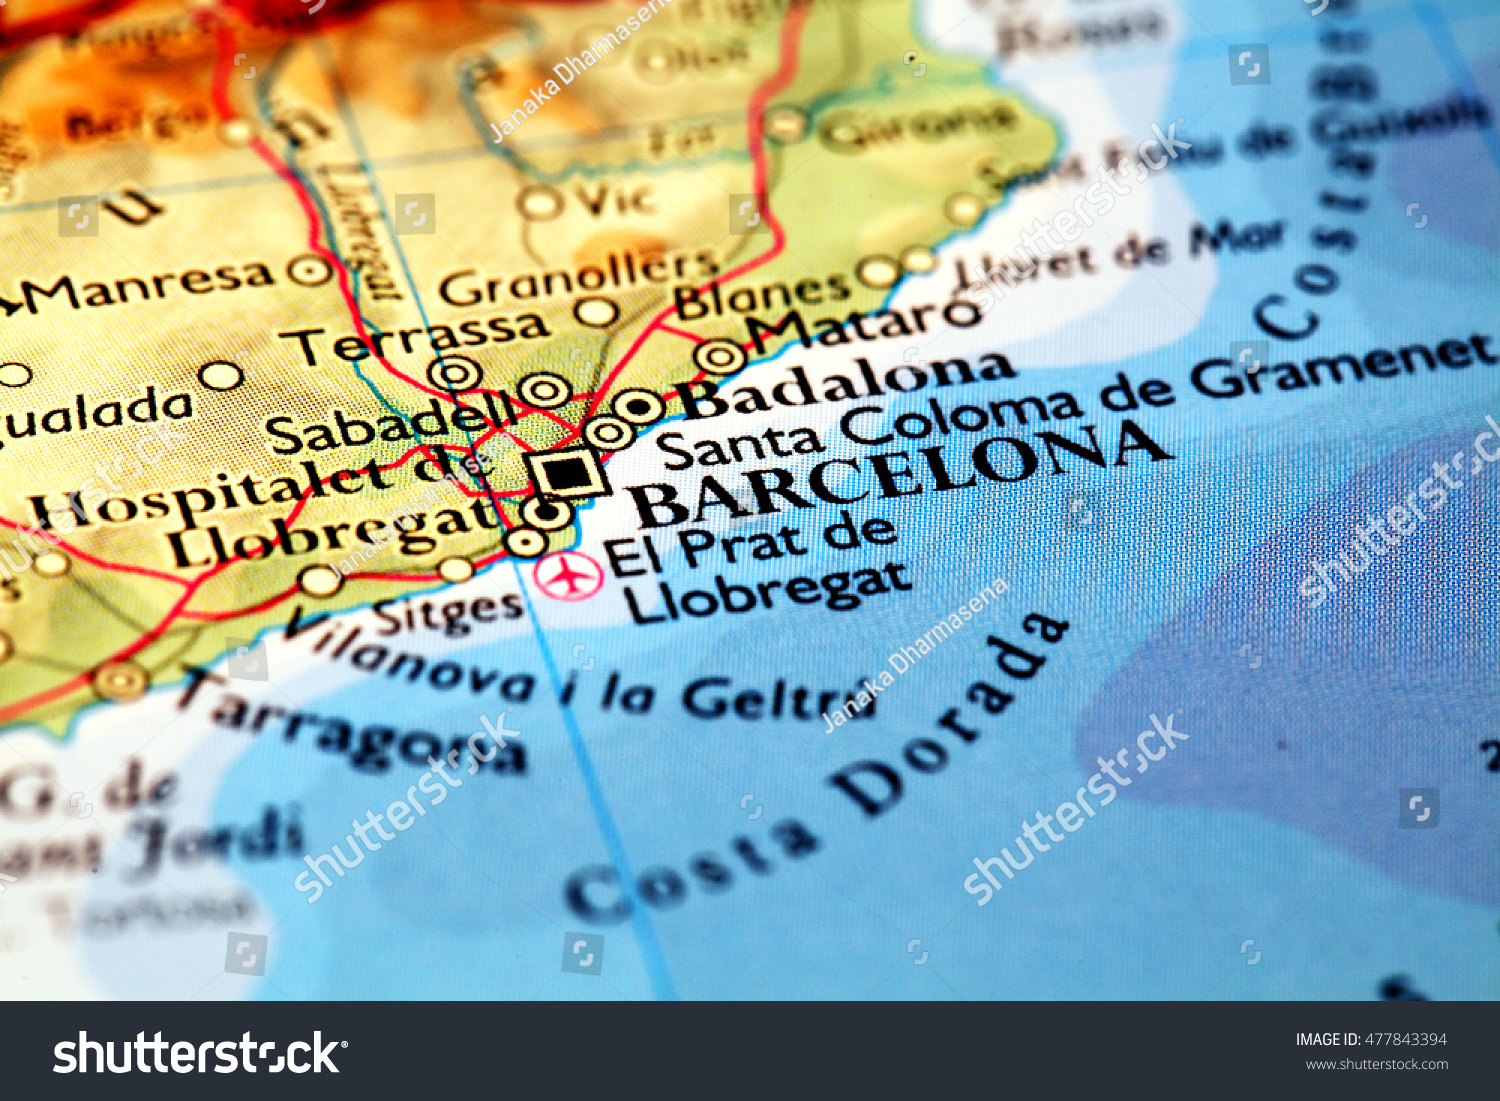 Barcelona Spain On Atlas World Map Stock Photo Edit Now 477843394